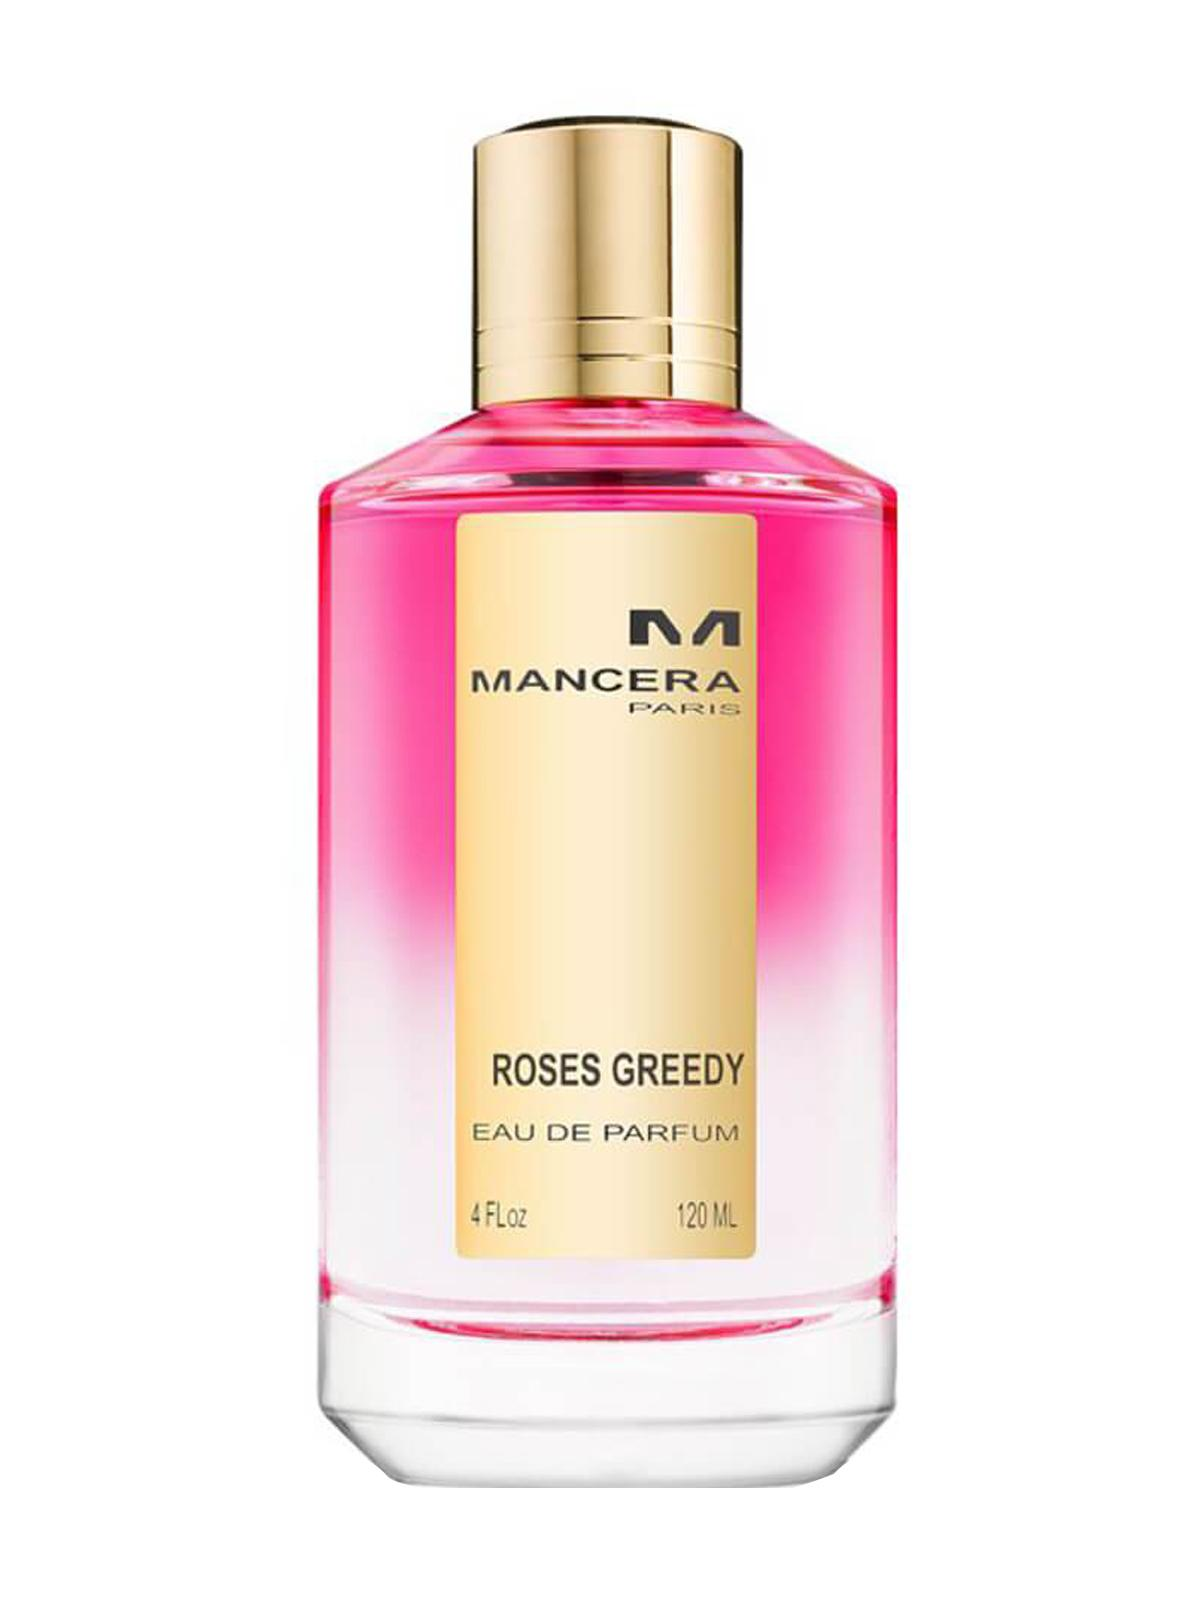 Mancera Roses Greedy For Women Eau De Parfum 120ML